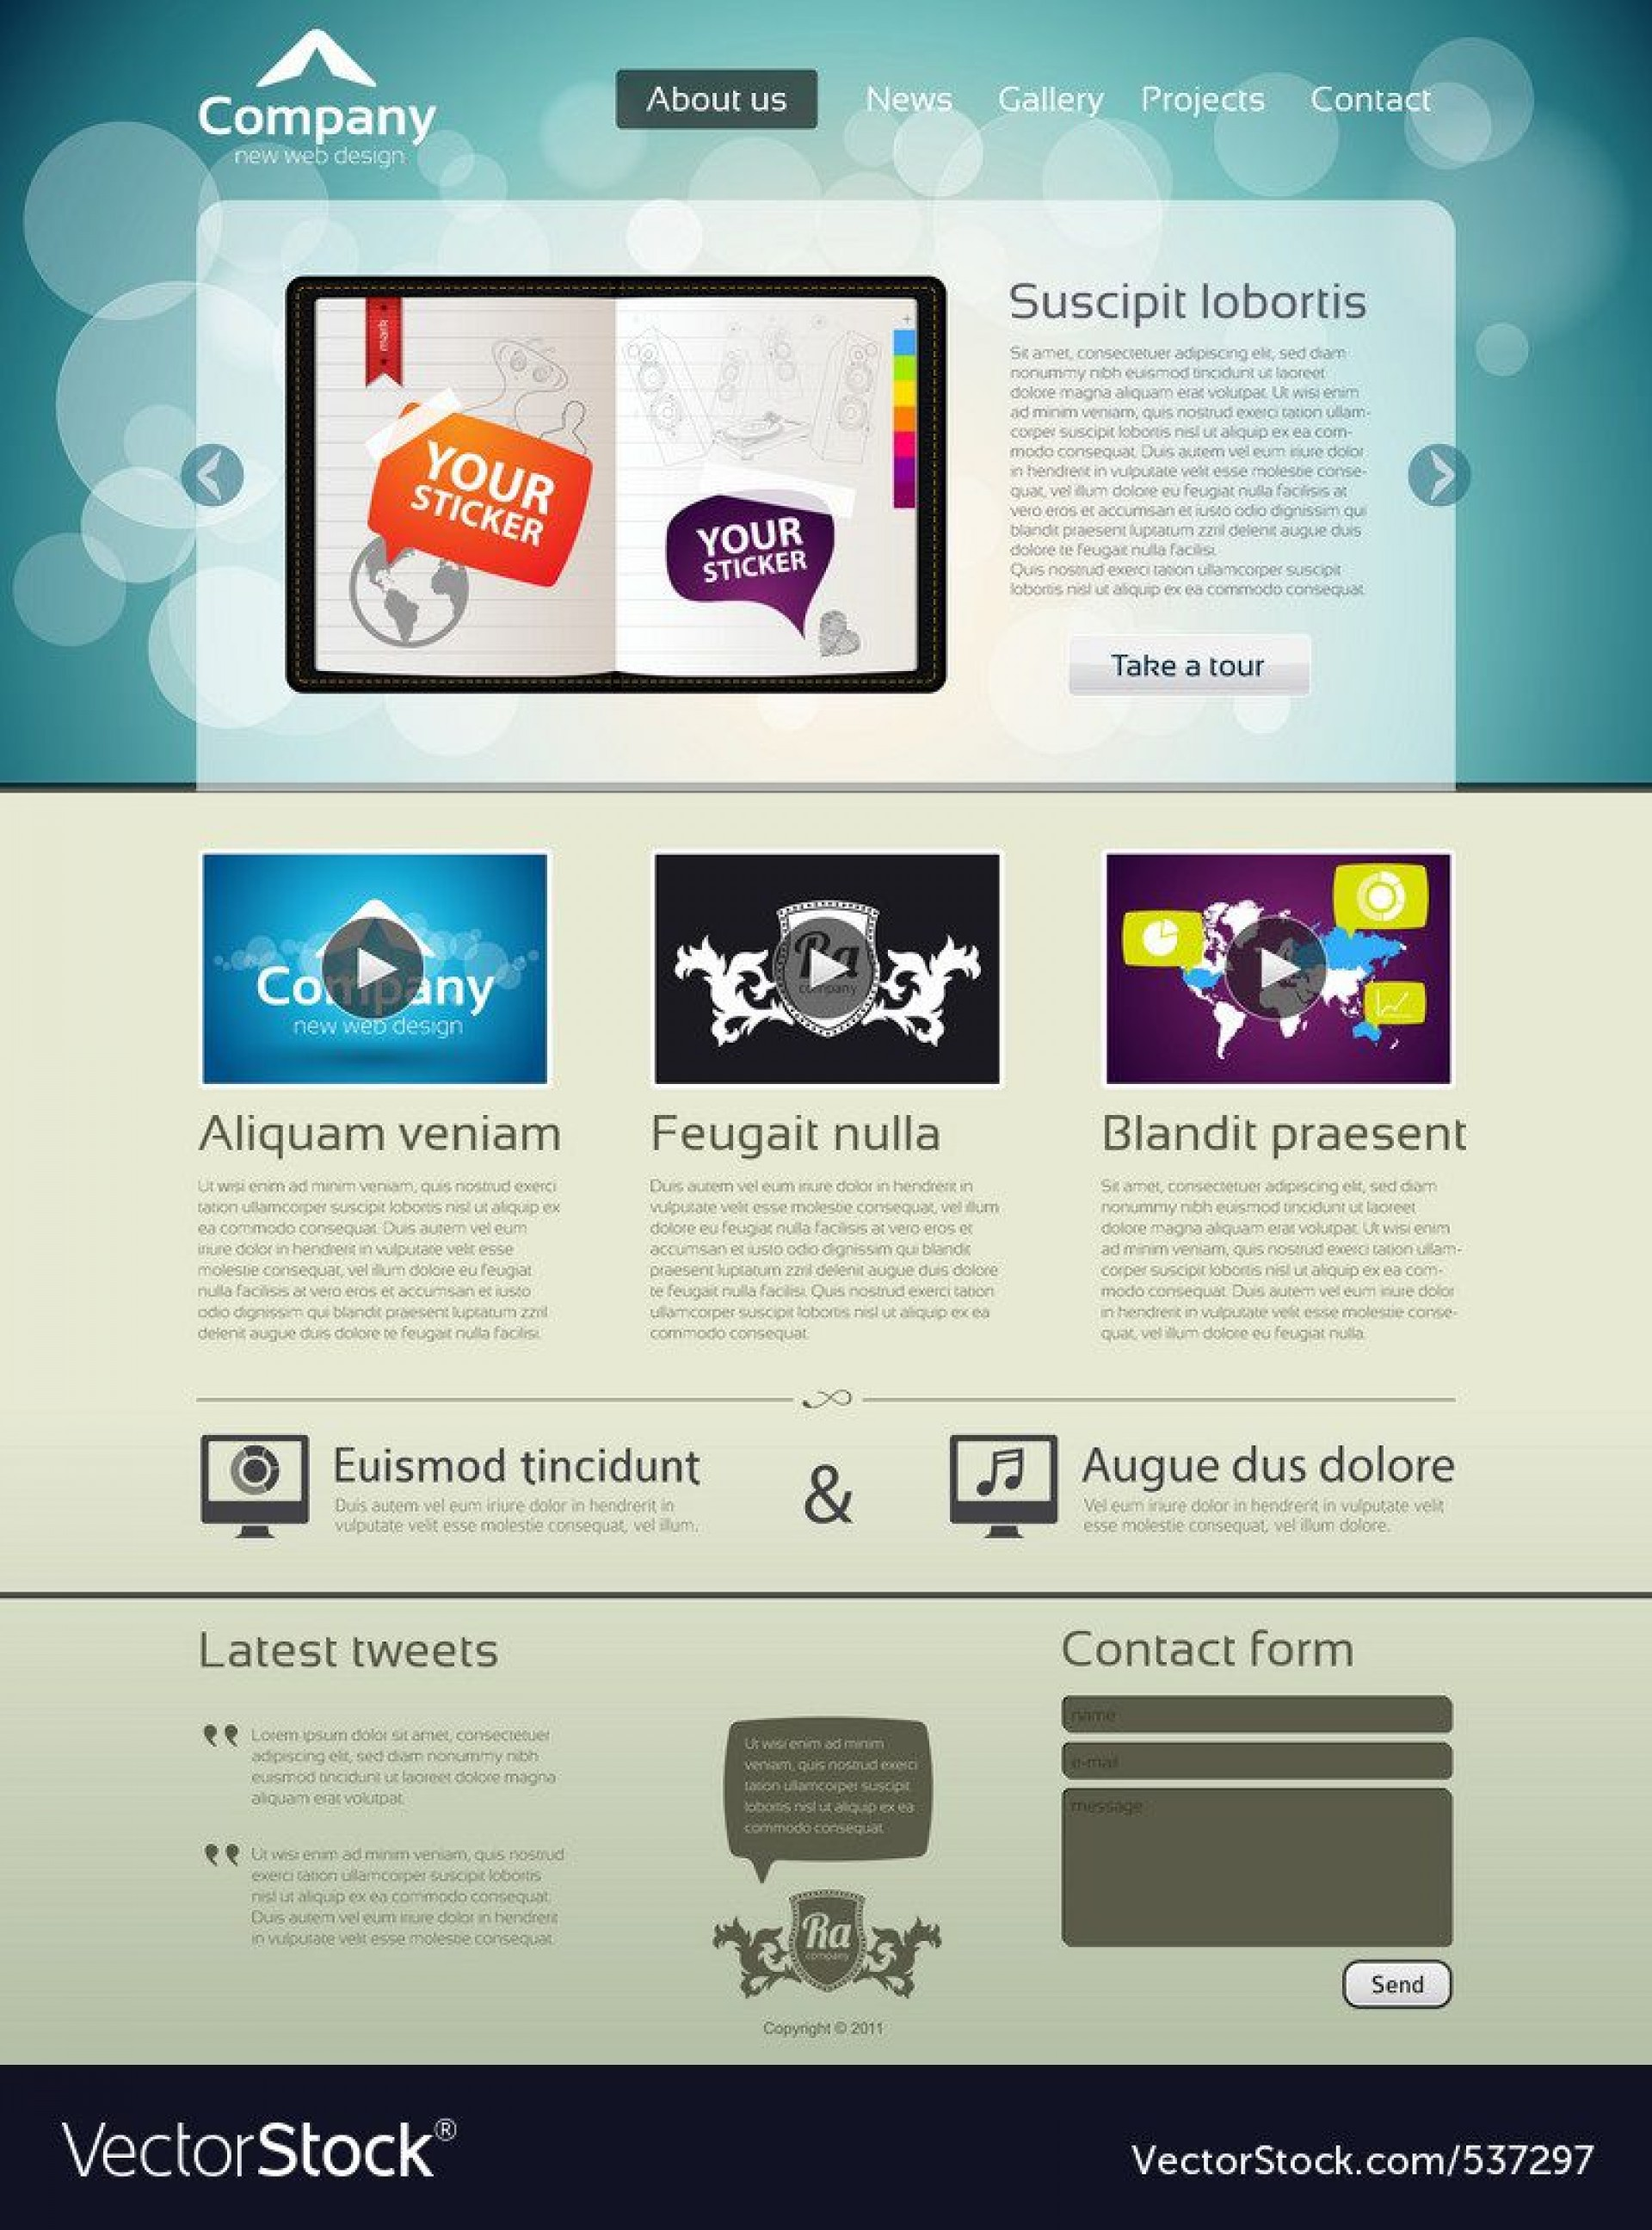 008 Awesome Website Design Template Free Image  Asp.net Web Download Psd1920